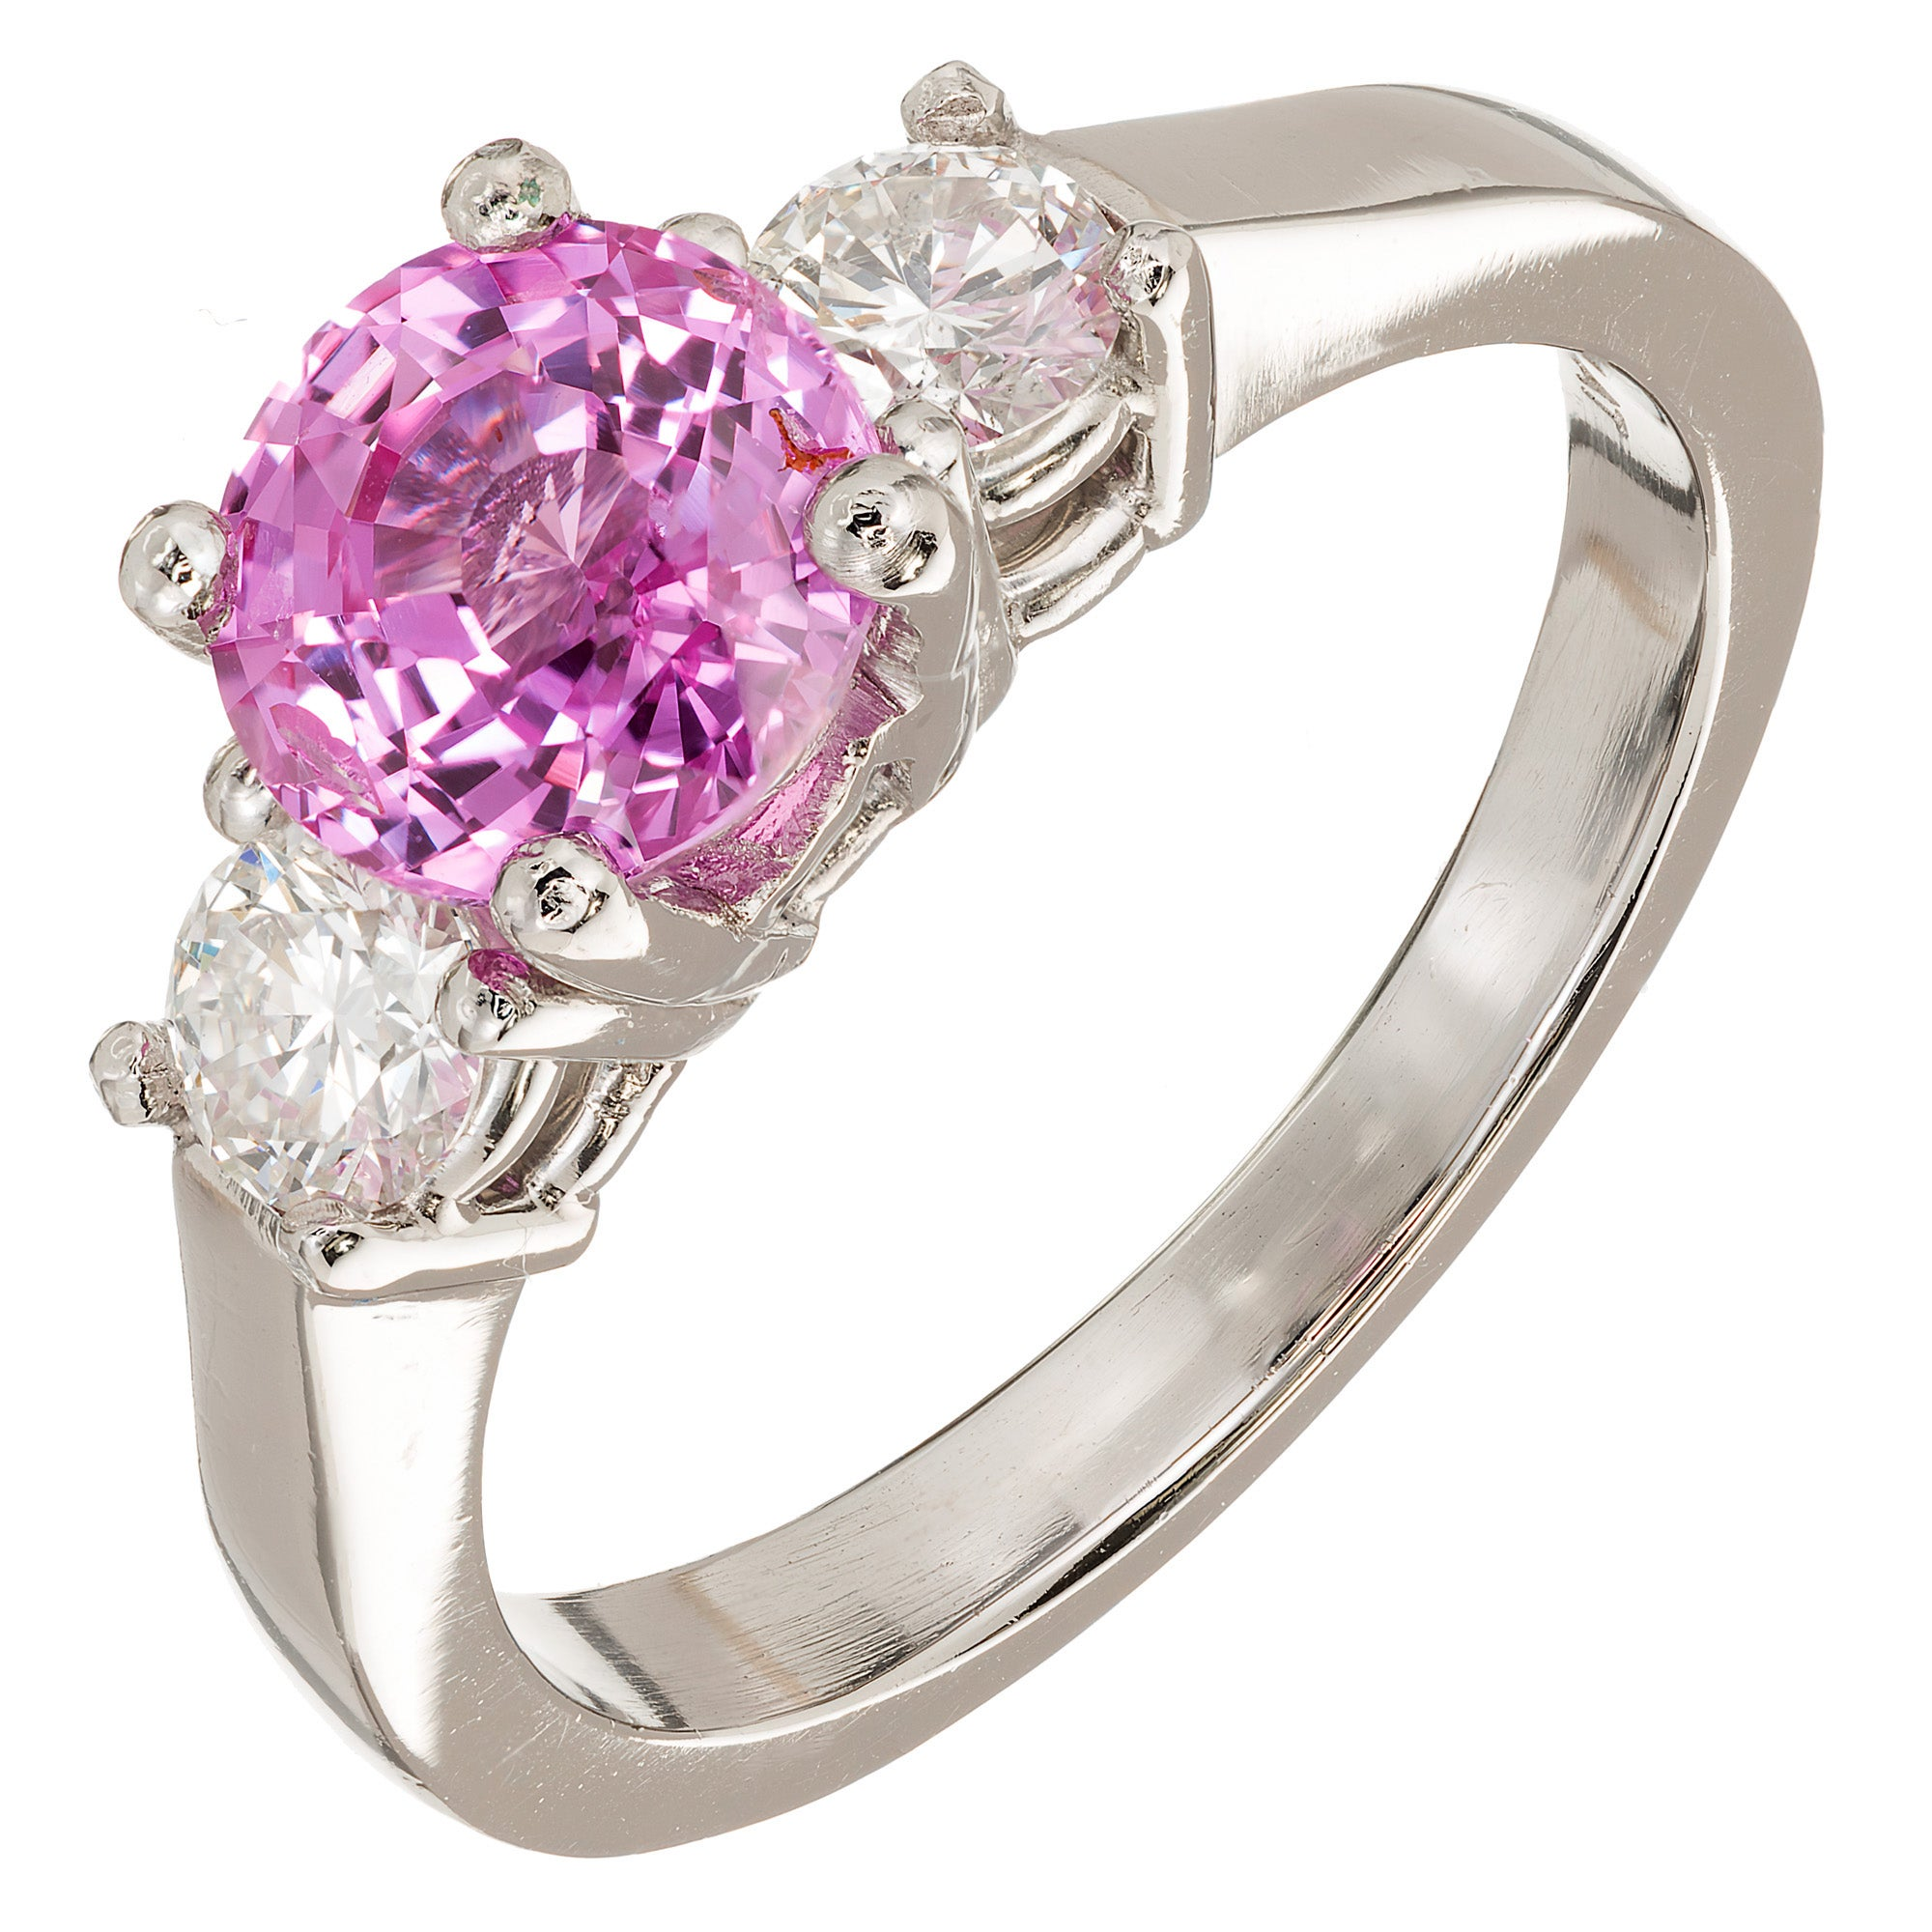 1.79 Carat Pink Sapphire Diamond Platinum Three-Stone Engagement Ring